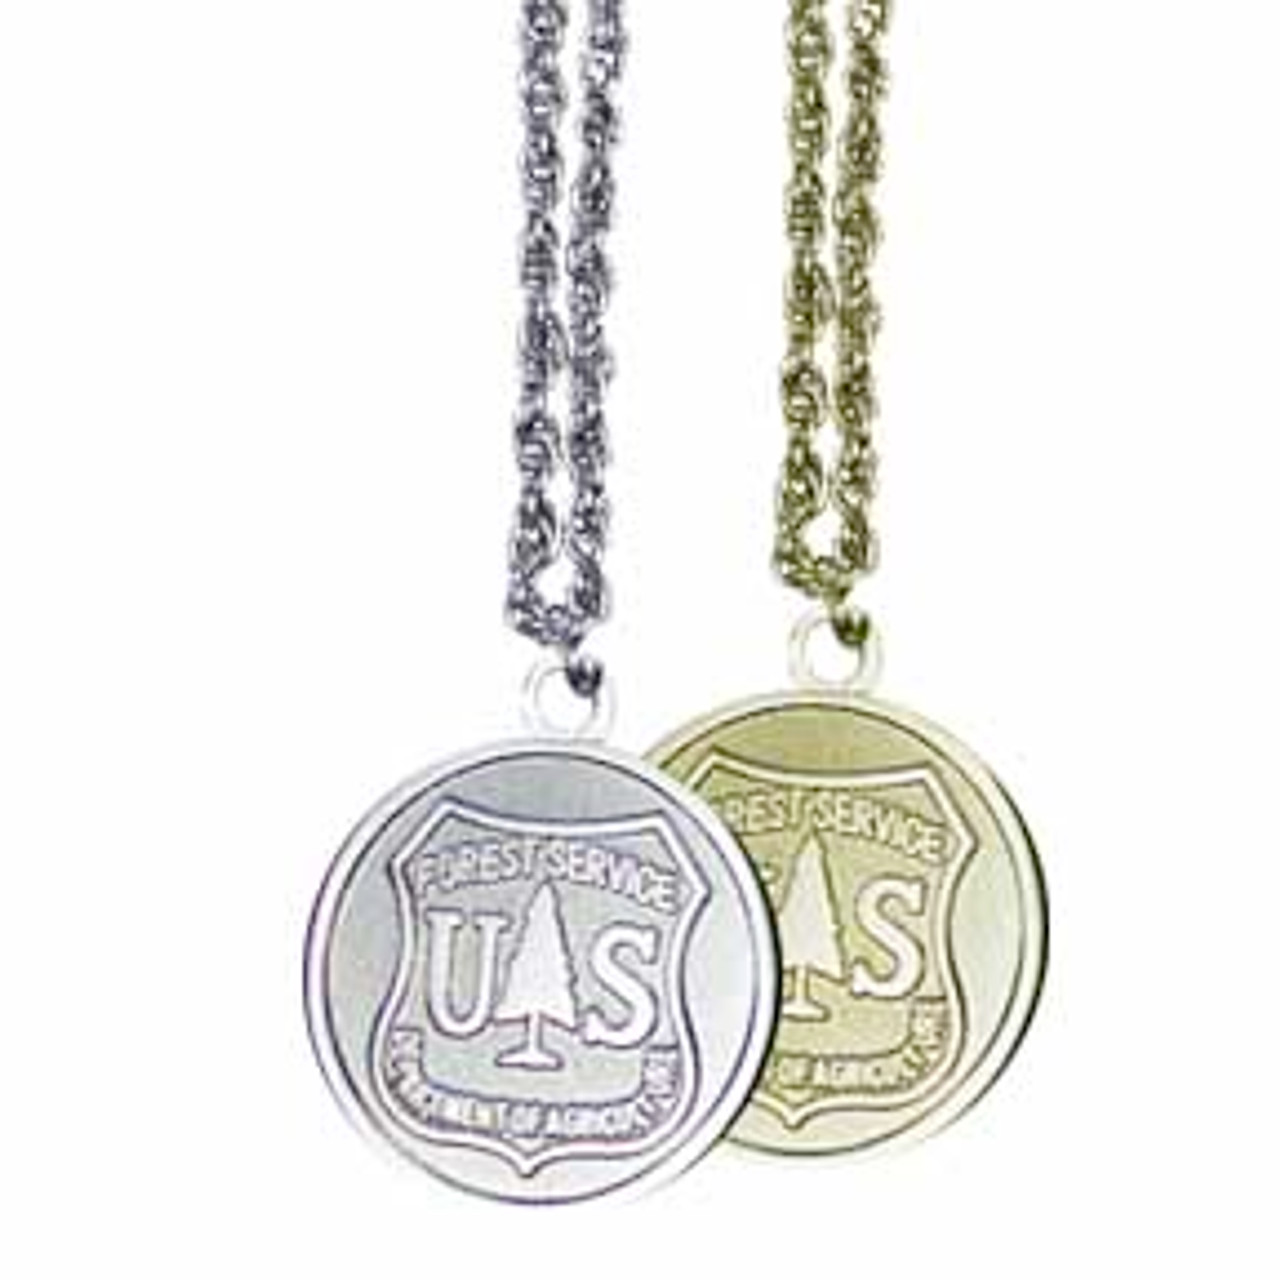 Forest Service Round Necklace (Gold)